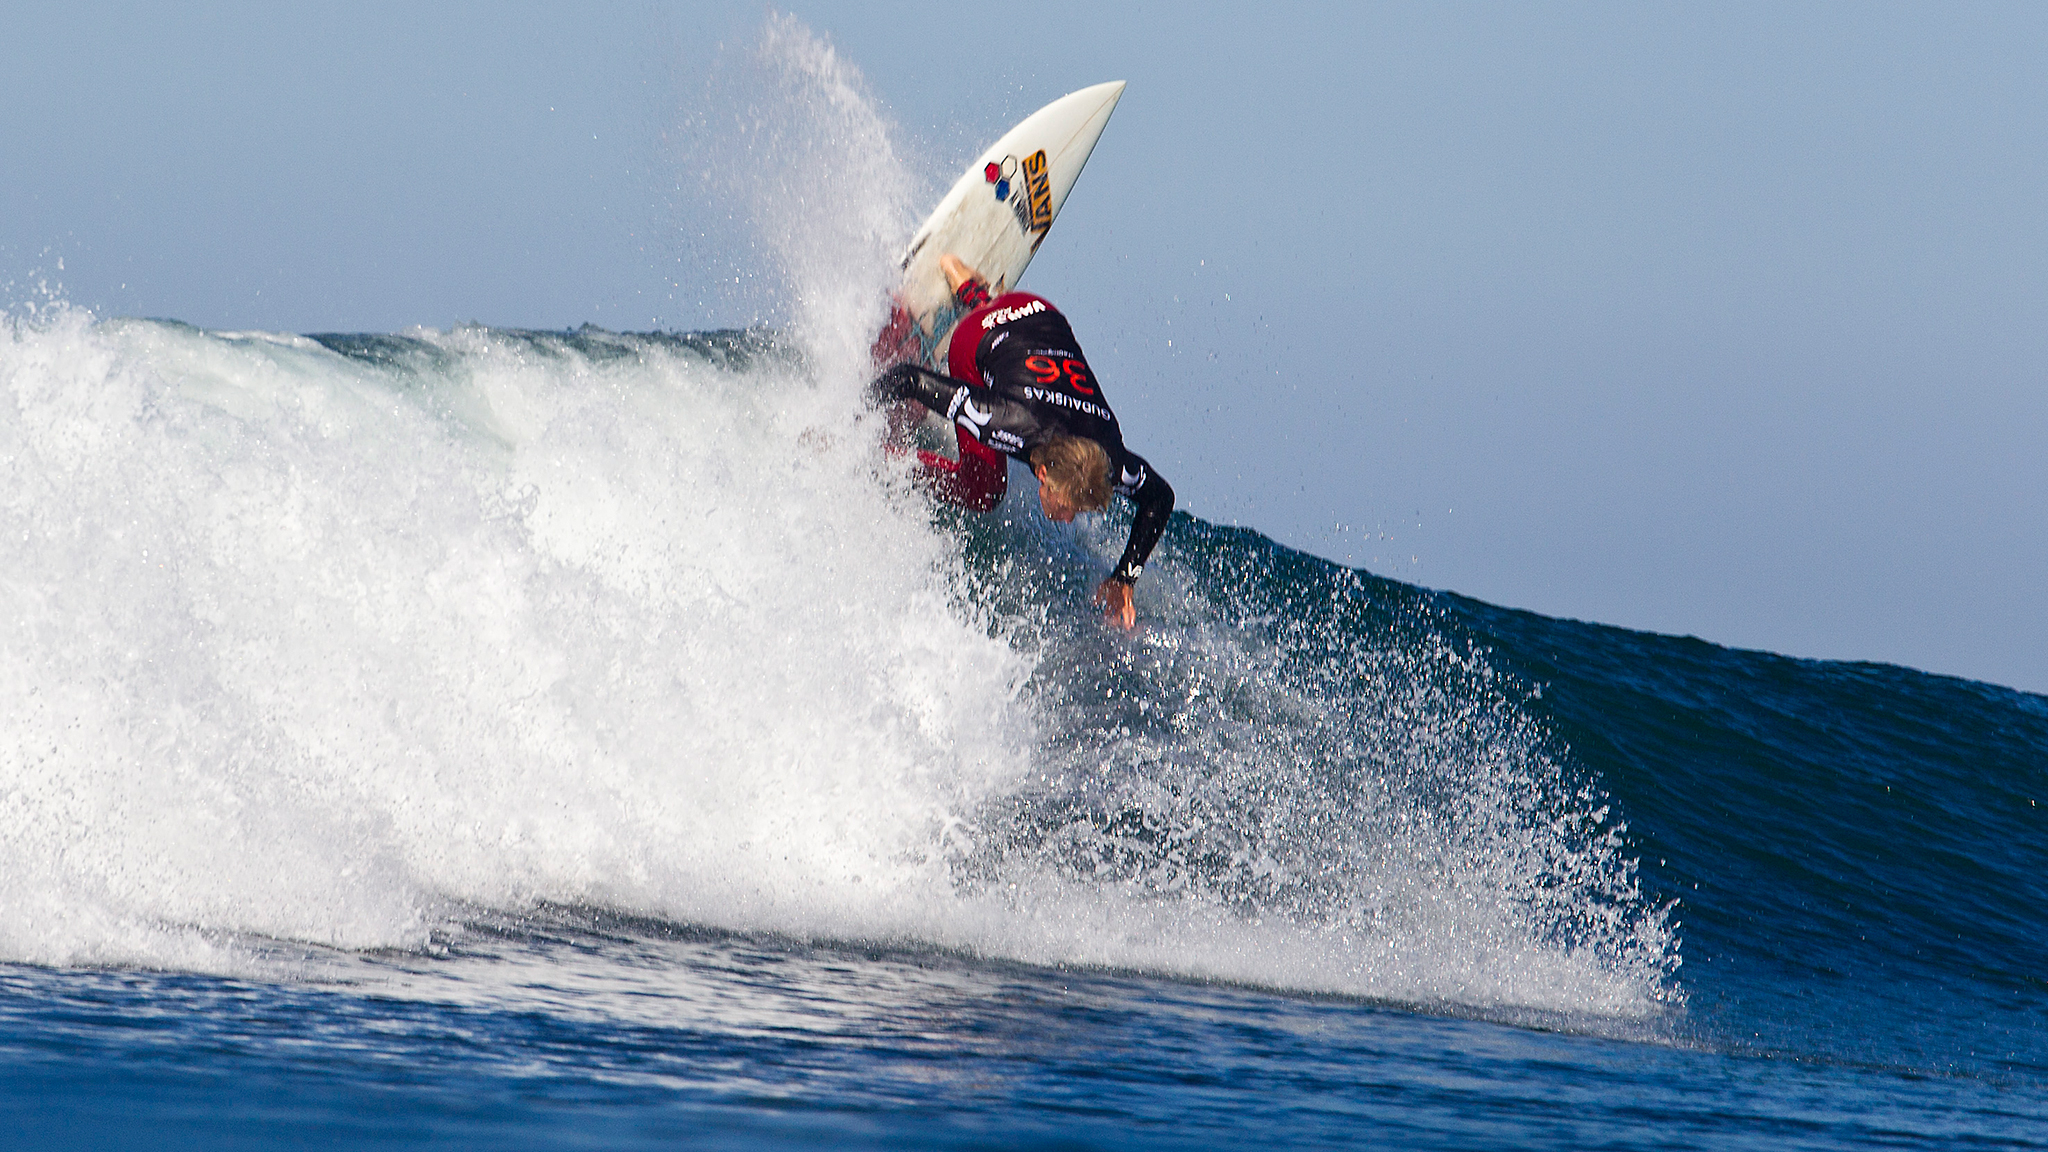 Pat Gudauskas made it through his Round 2 heat against Ace Buchan, only to face top-seed Kelly Slater in Round 3.